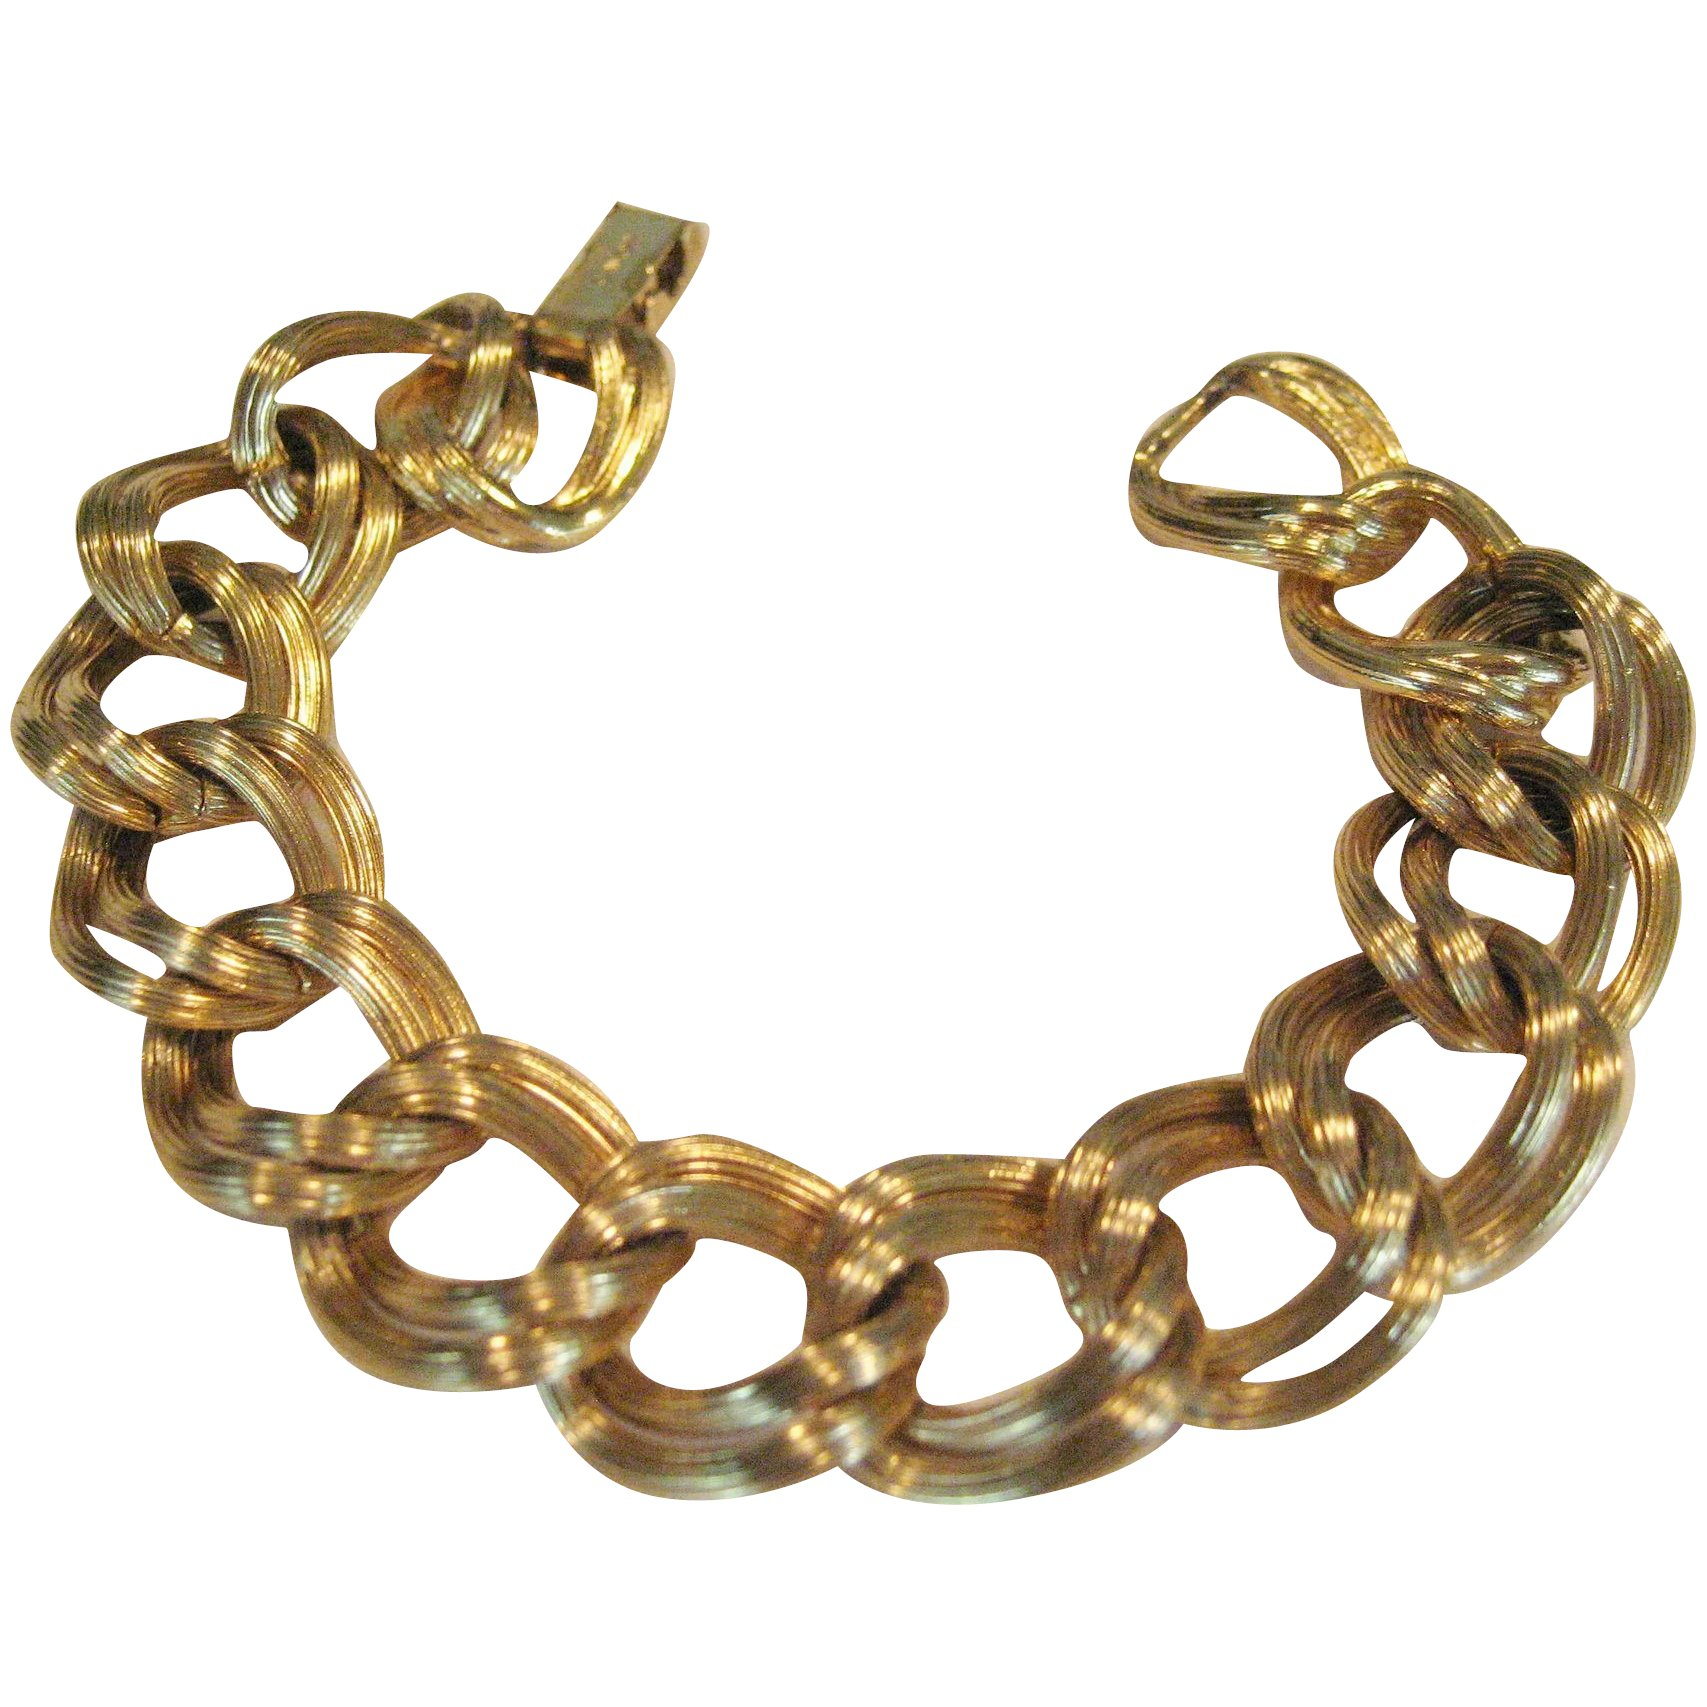 Gold Avon ball and cage bracelet